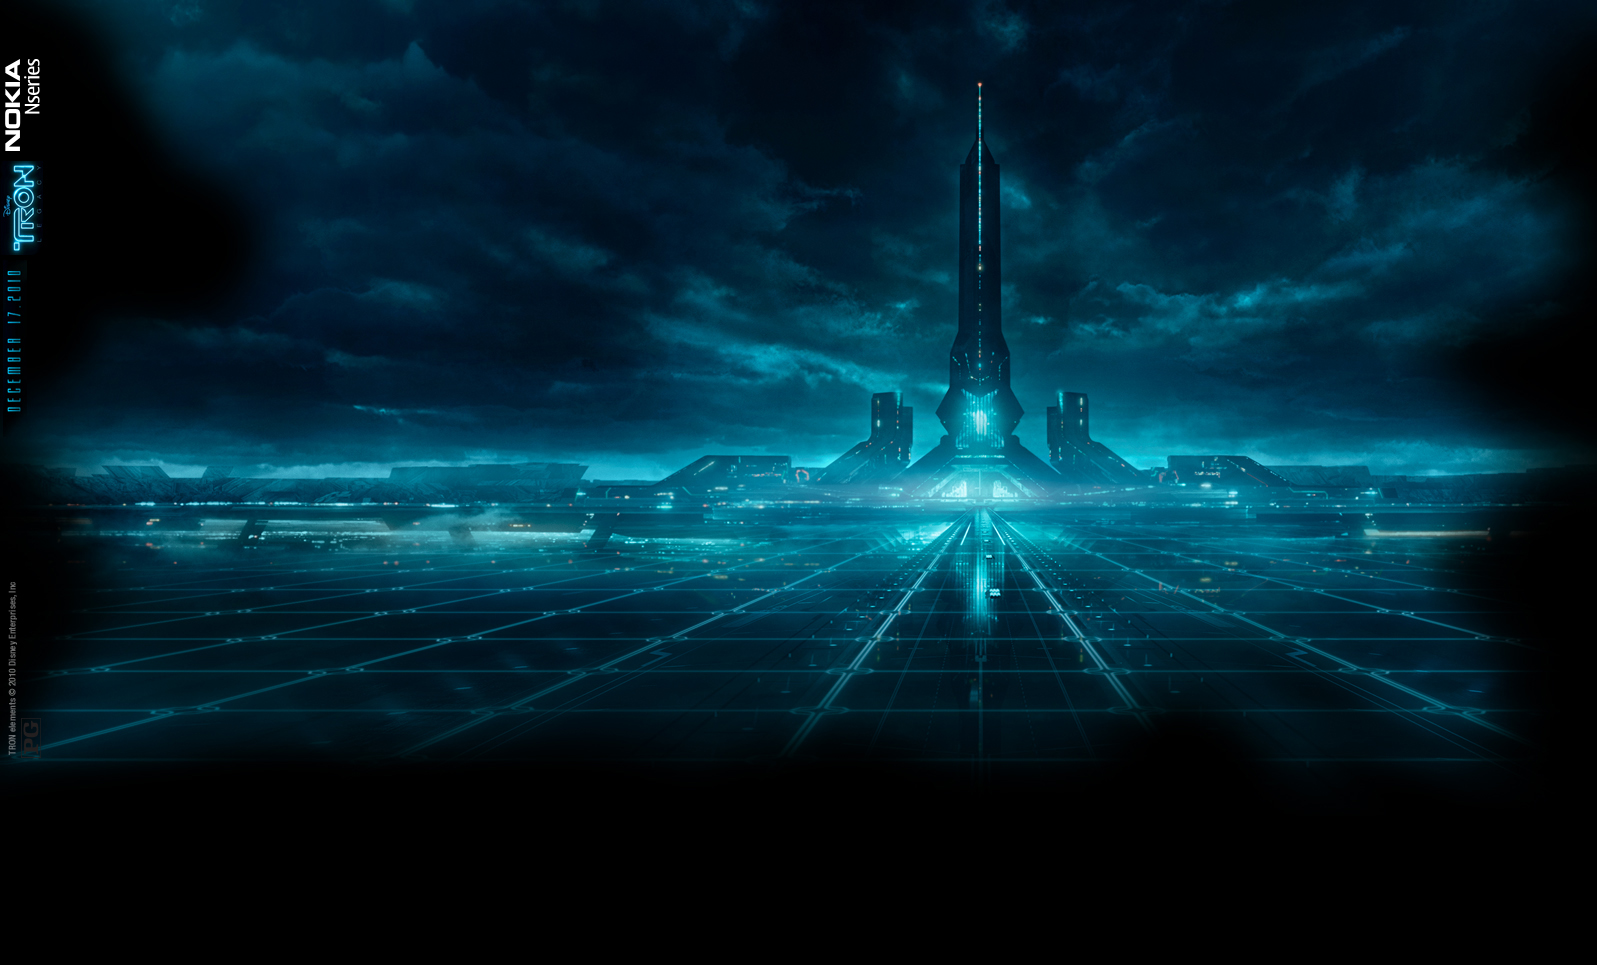 78 Best images about Tron on Pinterest | Daft punk, Suits and